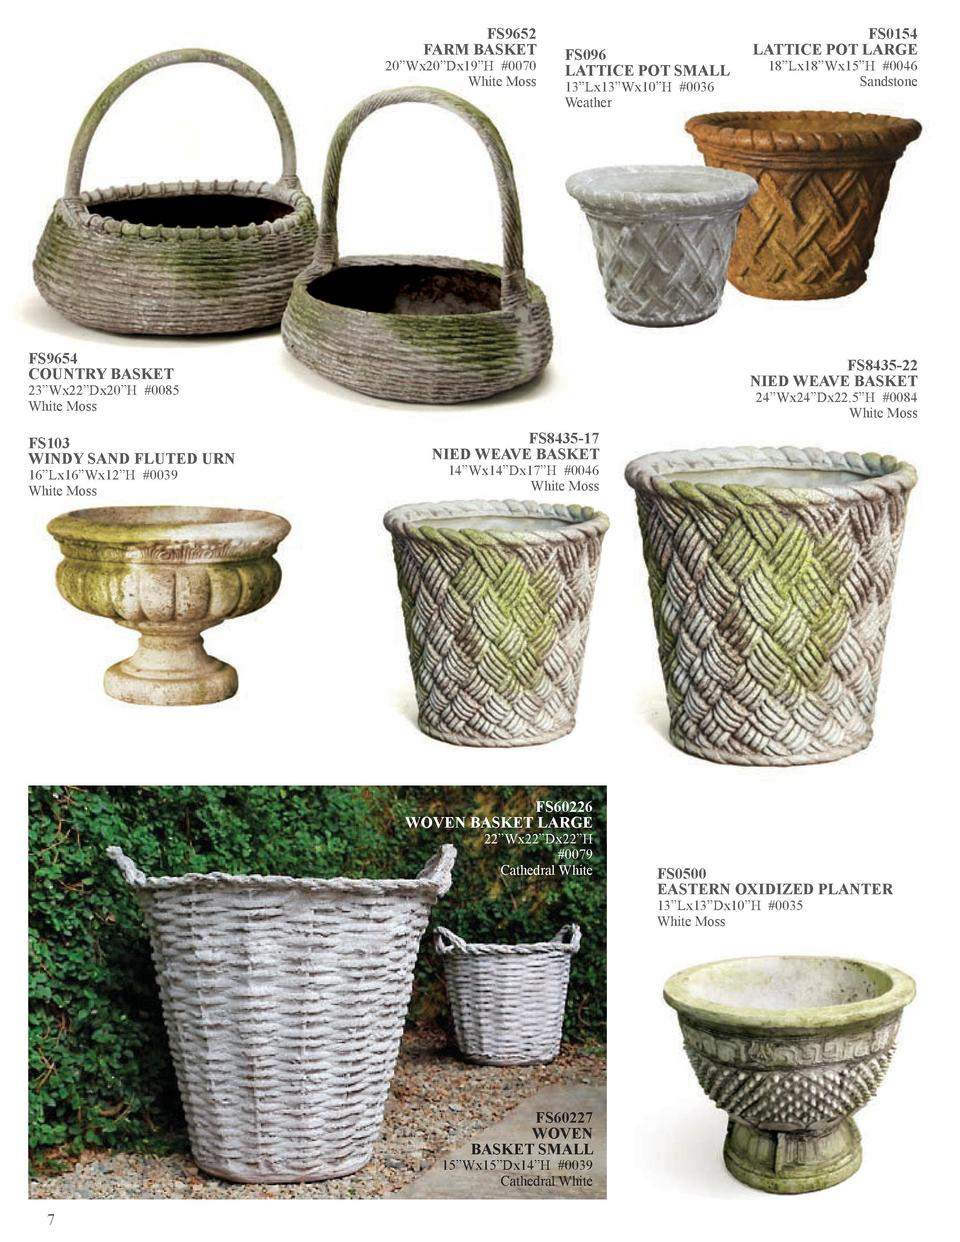 FS9652 FARM BASKET  20   Wx20   Dx19   H  0070 White Moss  FS096 LATTICE POT SMALL 13   Lx13   Wx10   H  0036 Weather  FS9...